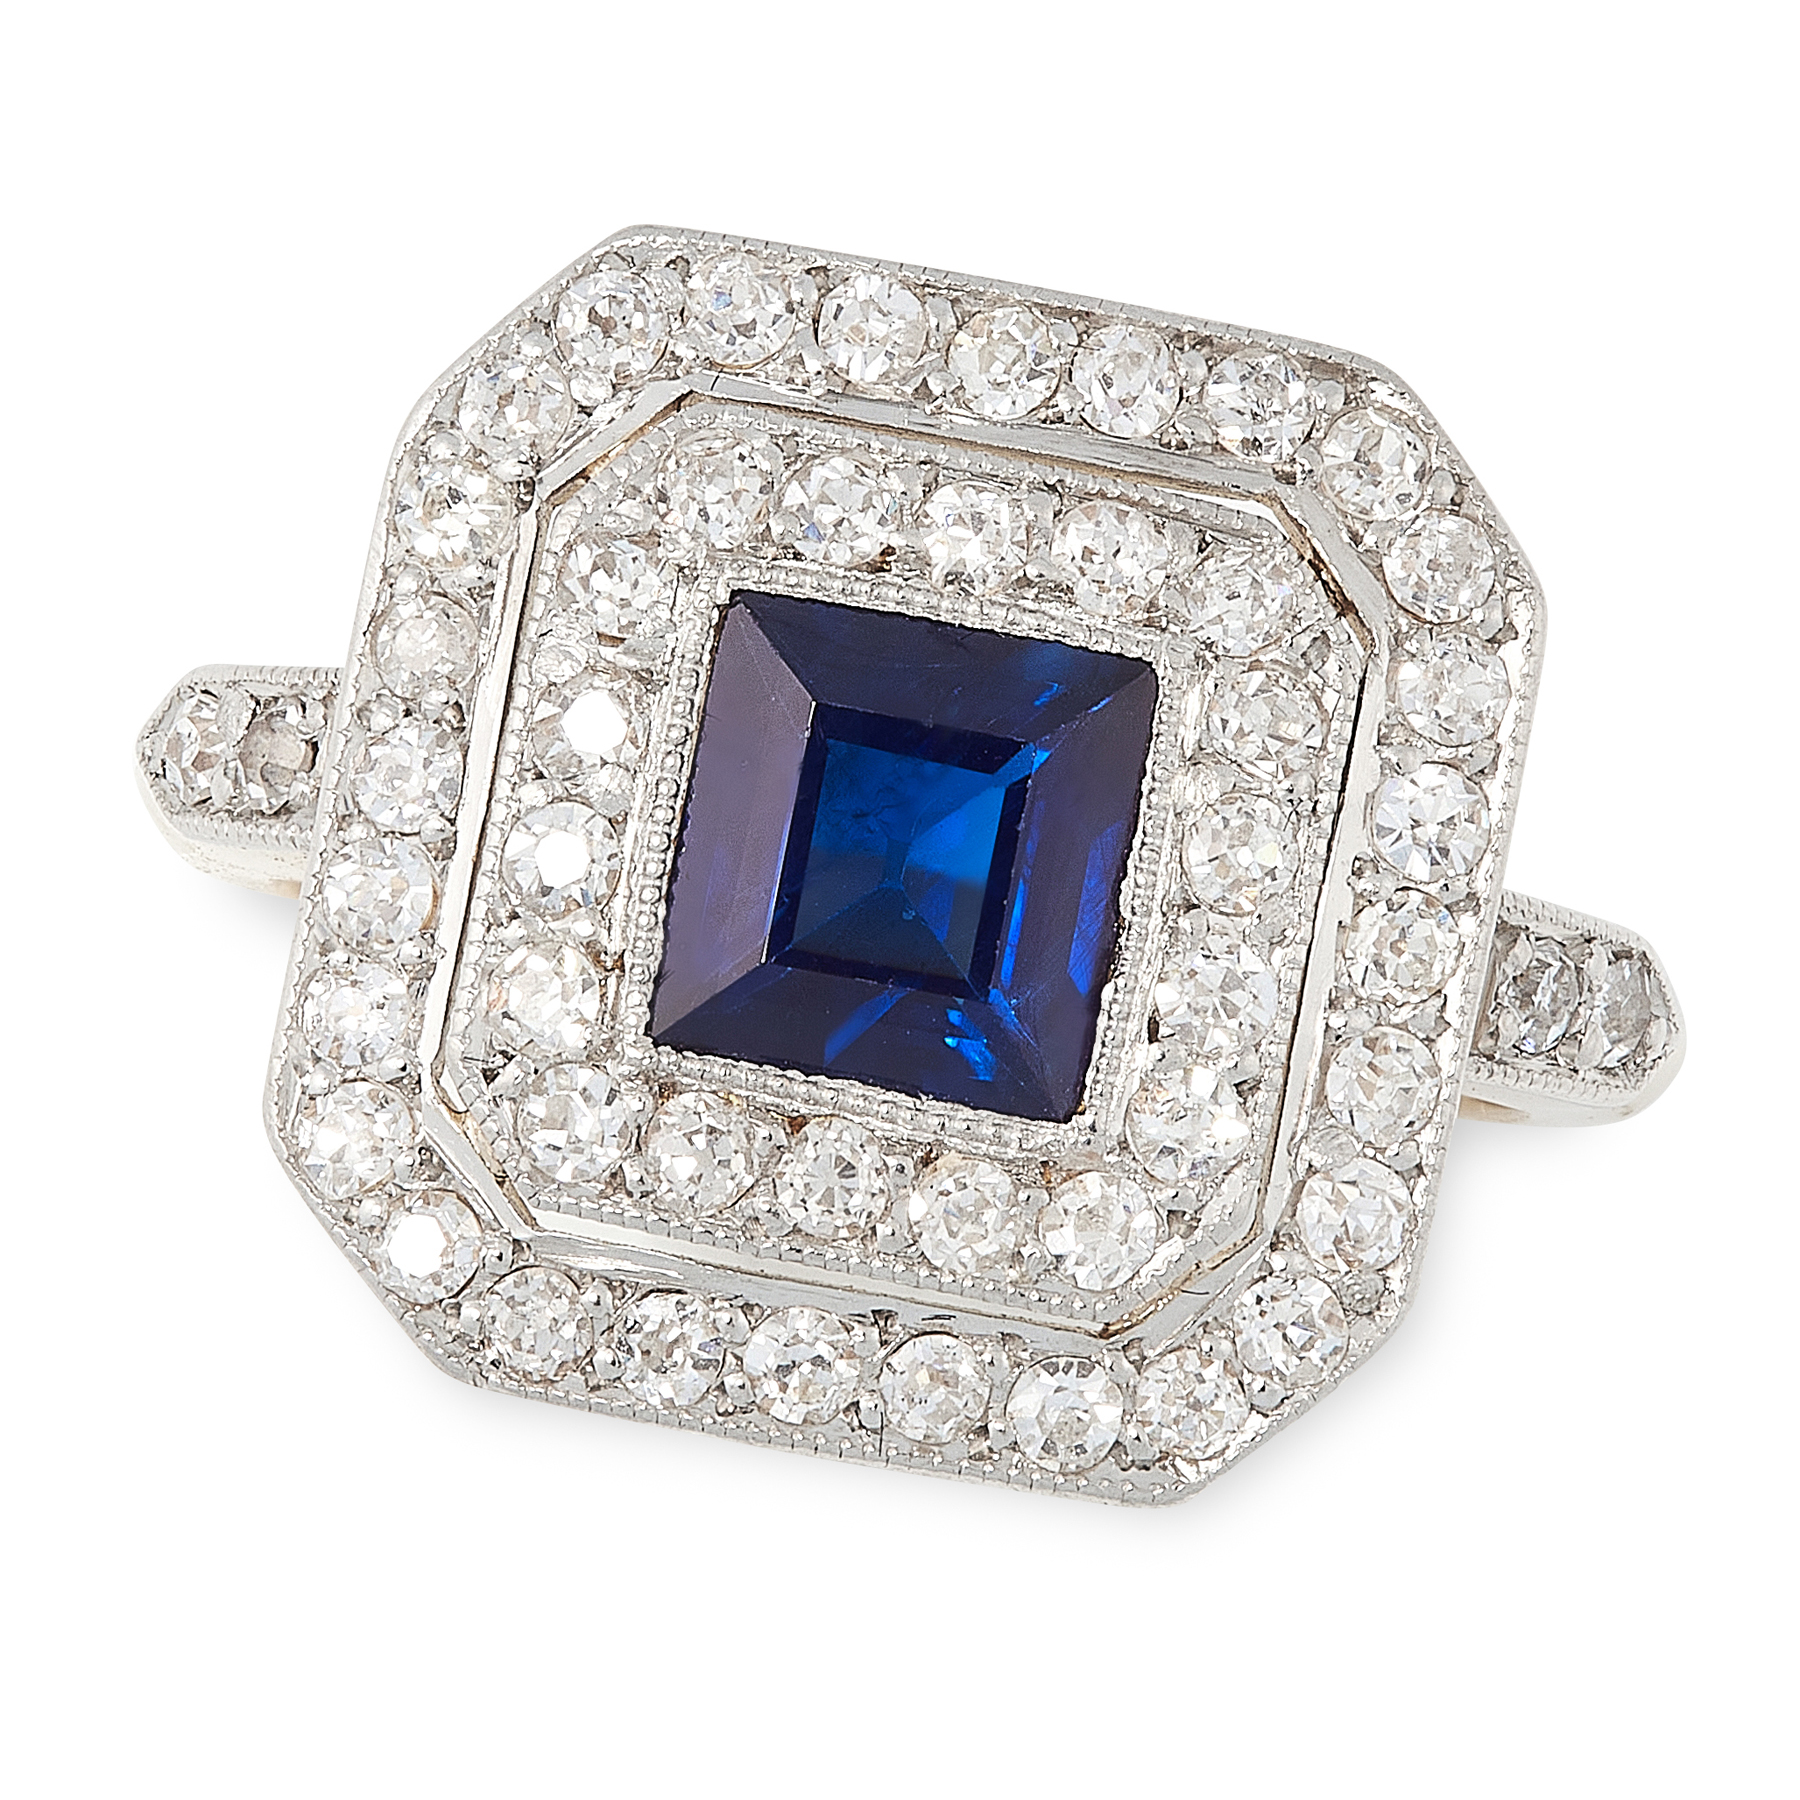 A SAPPHIRE AND DIAMOND DRESS RING, CIRCA 1930 in 18ct yellow gold, set with a square cut sapphire of